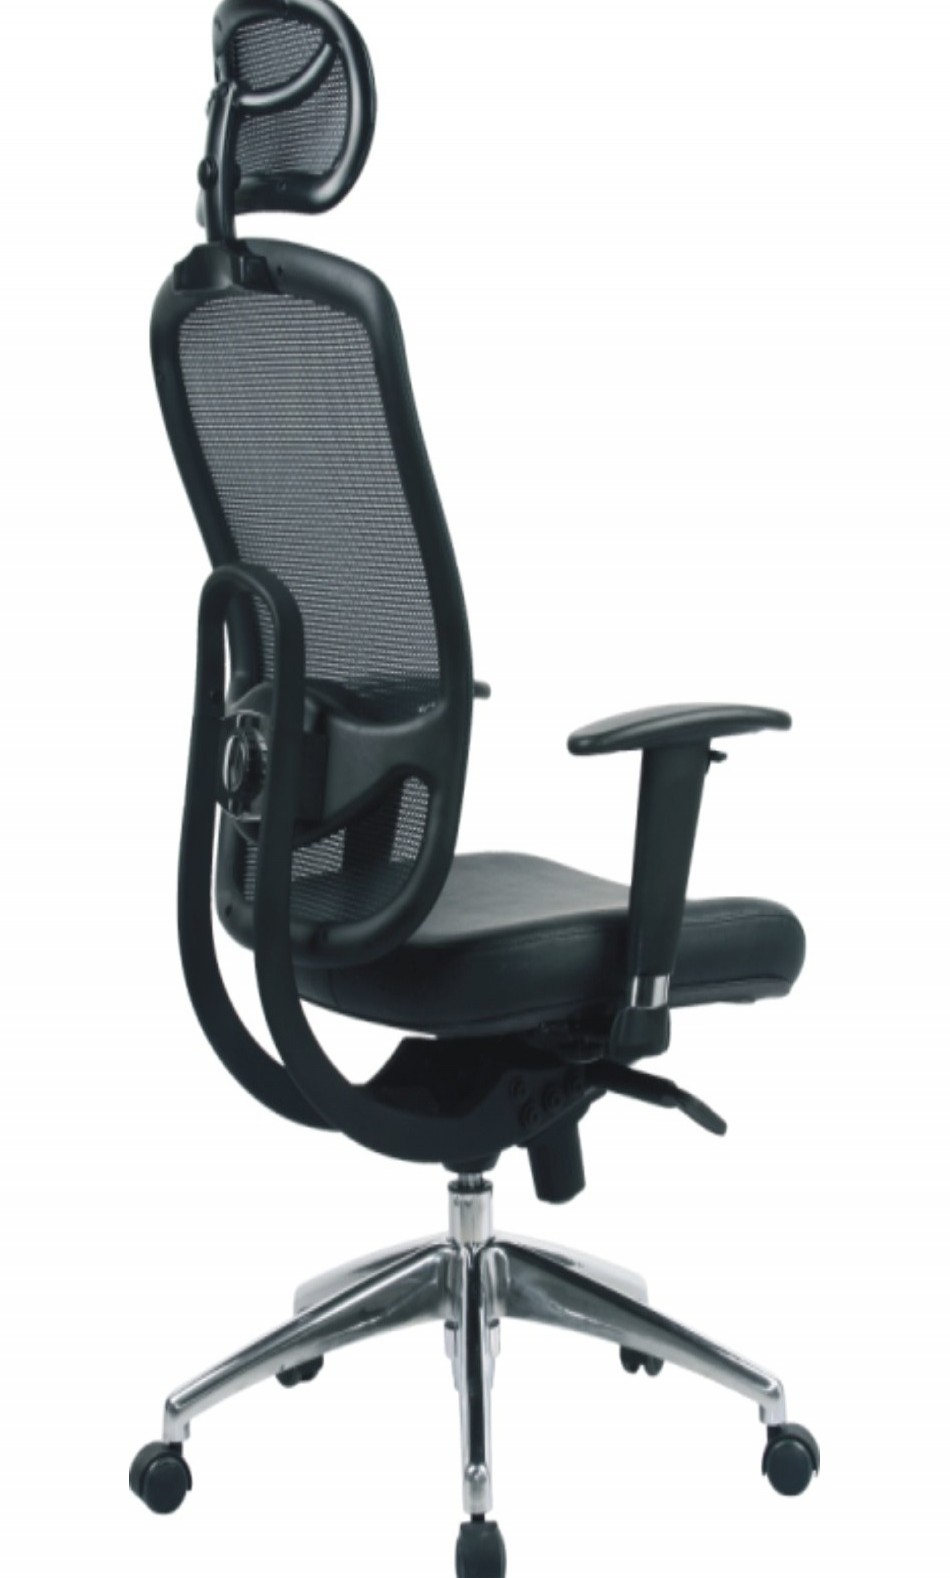 high back mesh office chair with leather effect headrest. mesh high back executive armchair 80hbsy/ahr (with adjustable headrest) - enlarged view office chair with leather effect headrest